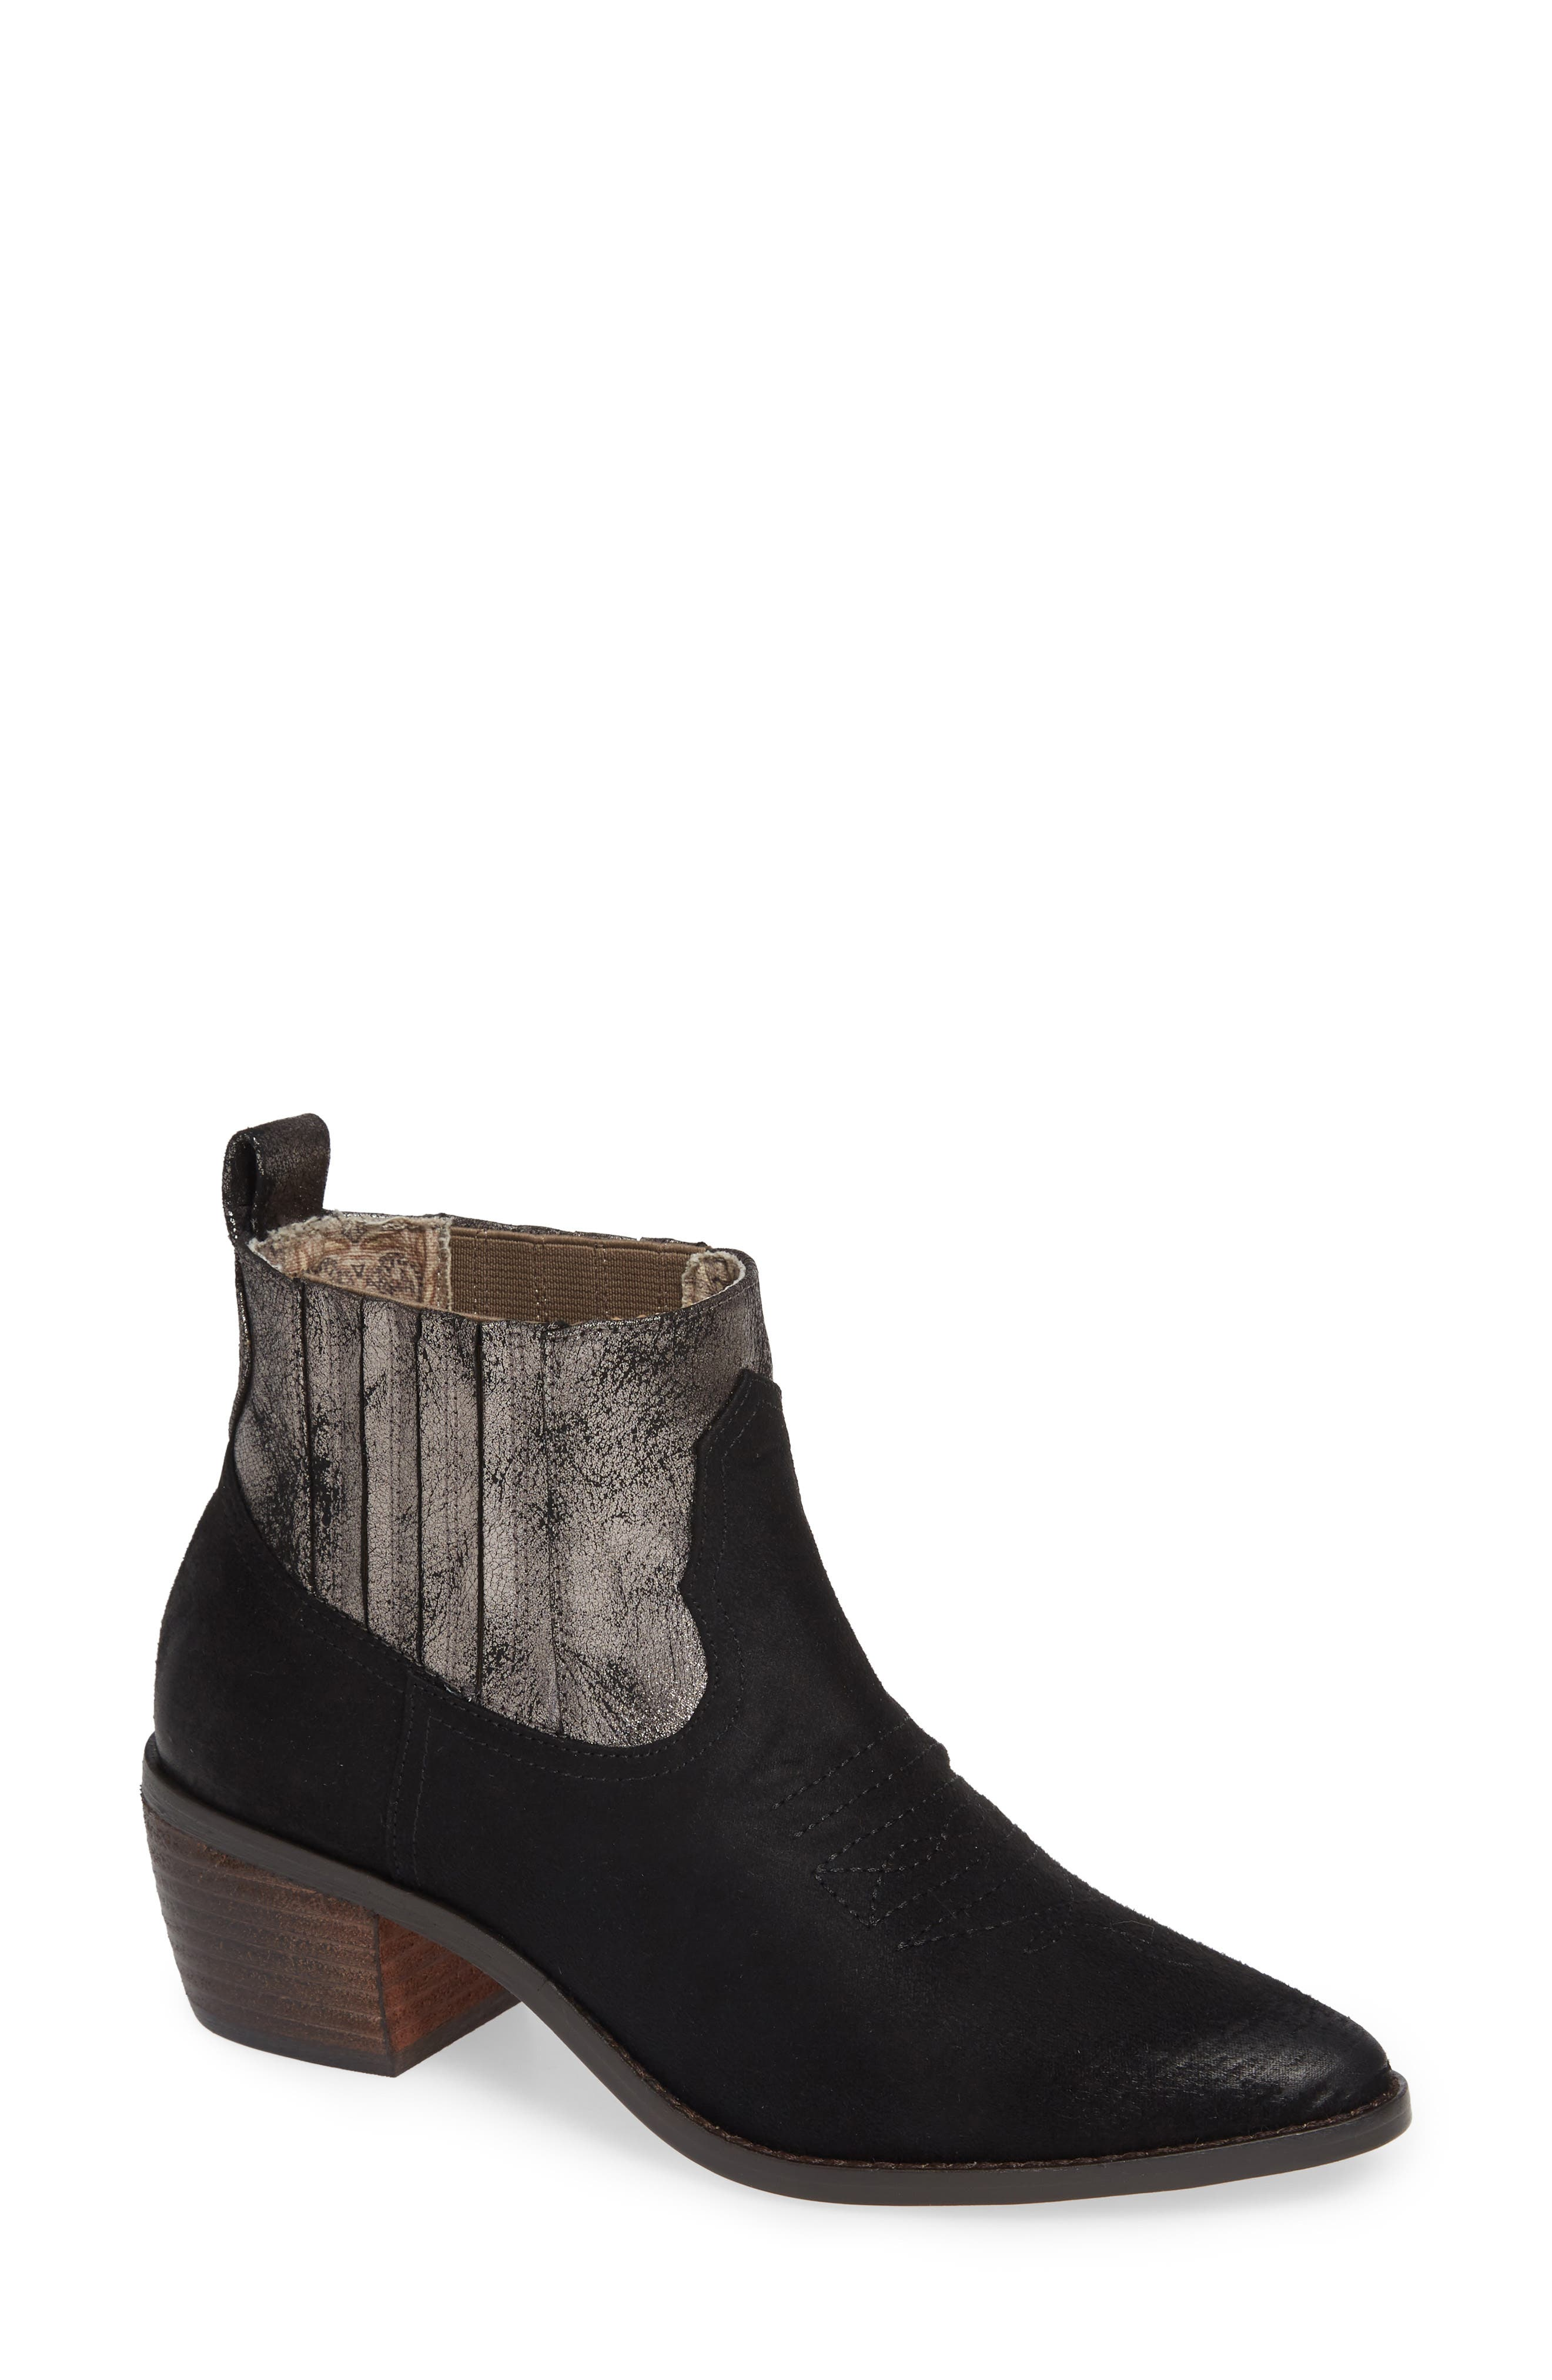 BAND OF GYPSIES Borderline Bootie in Black Faux Suede